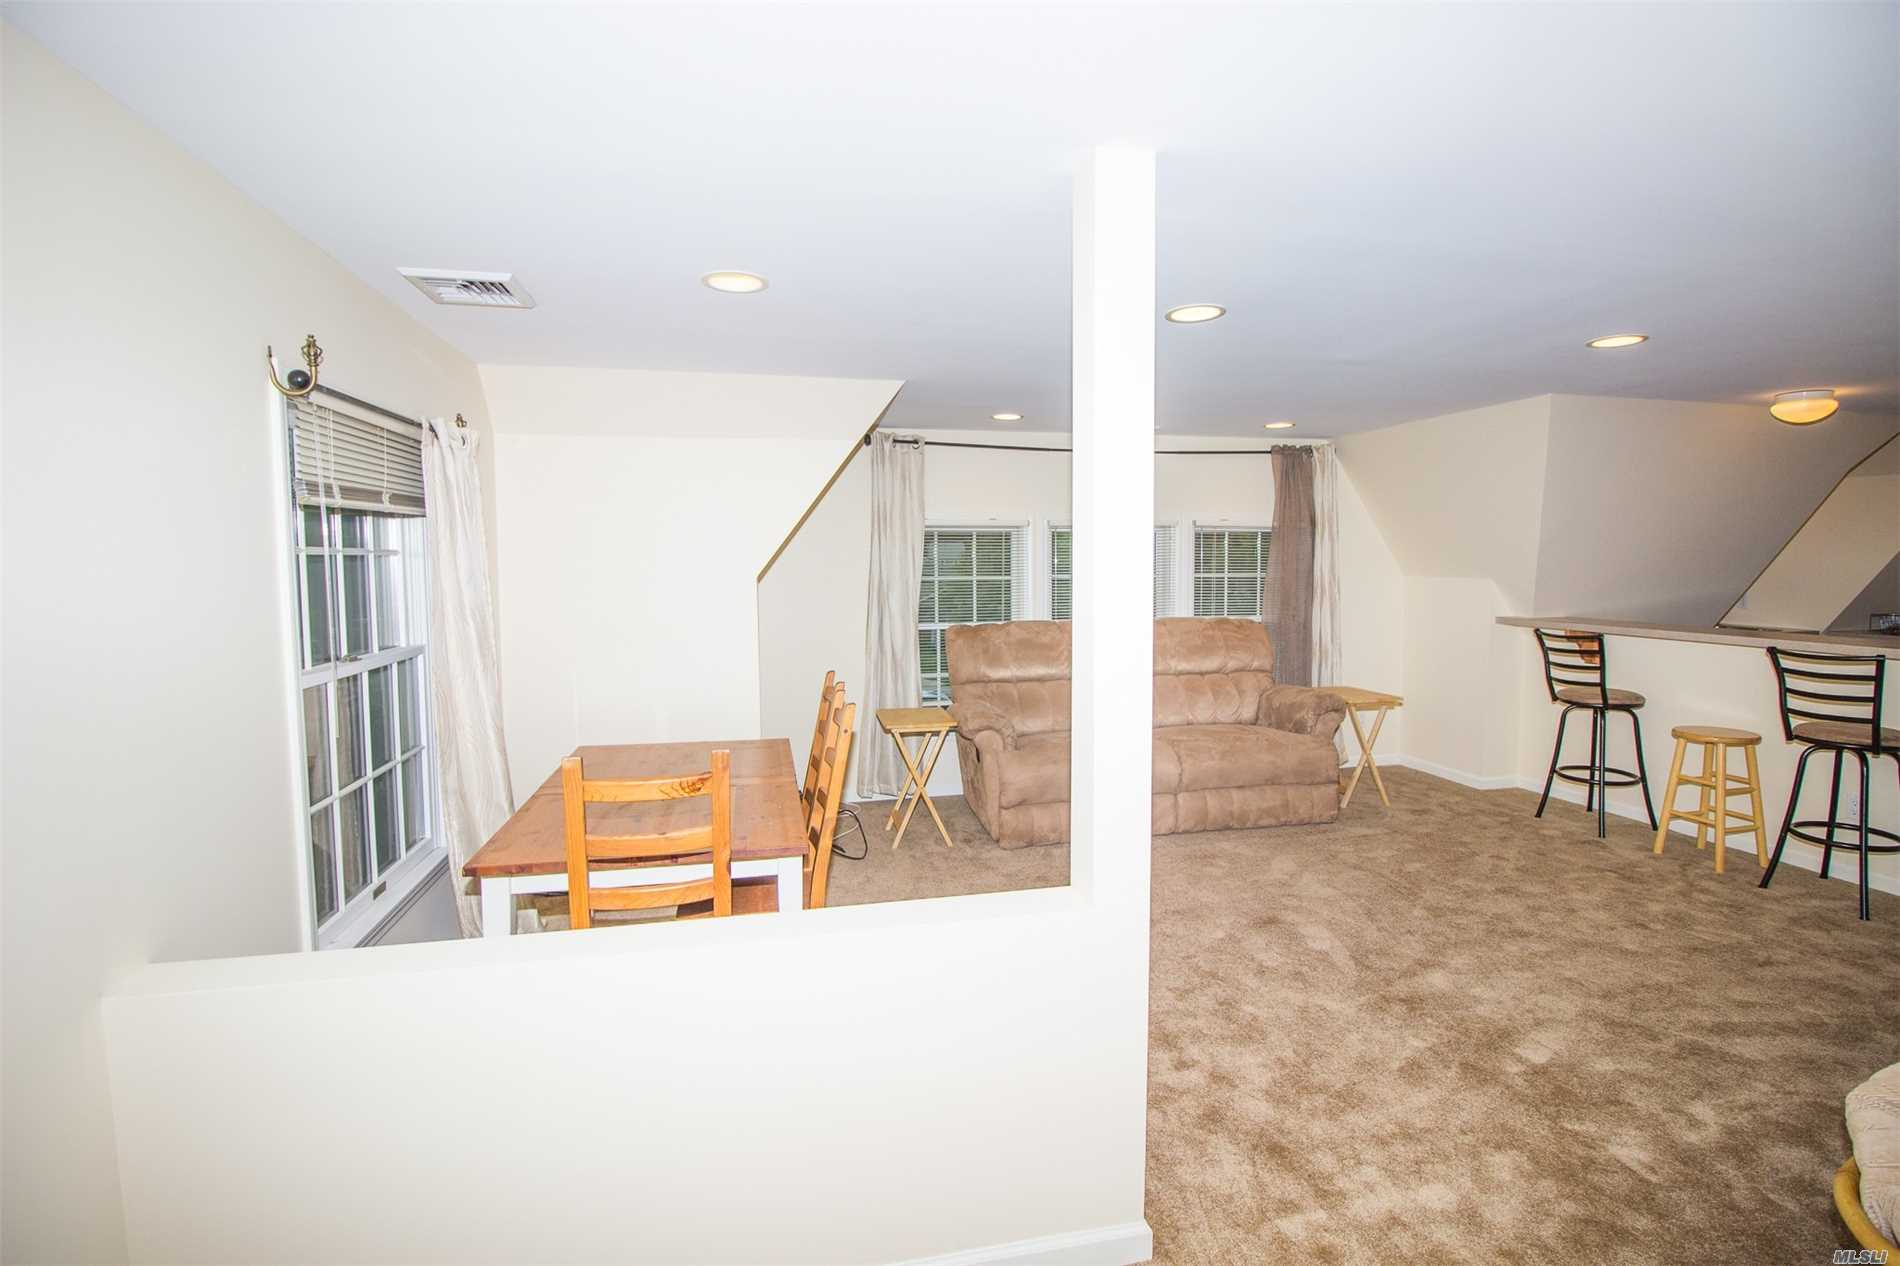 Beautiful 2 Bedroom 2 Bathroom Apartment Right In Center Moriches Town! Walk To The Canal And Enjoy The Benefits Of Having A Water View Apartment! New Carpet, New Washer & Dryer, New Paint! All You Need To Do Is Sign The Lease And Move Right In!